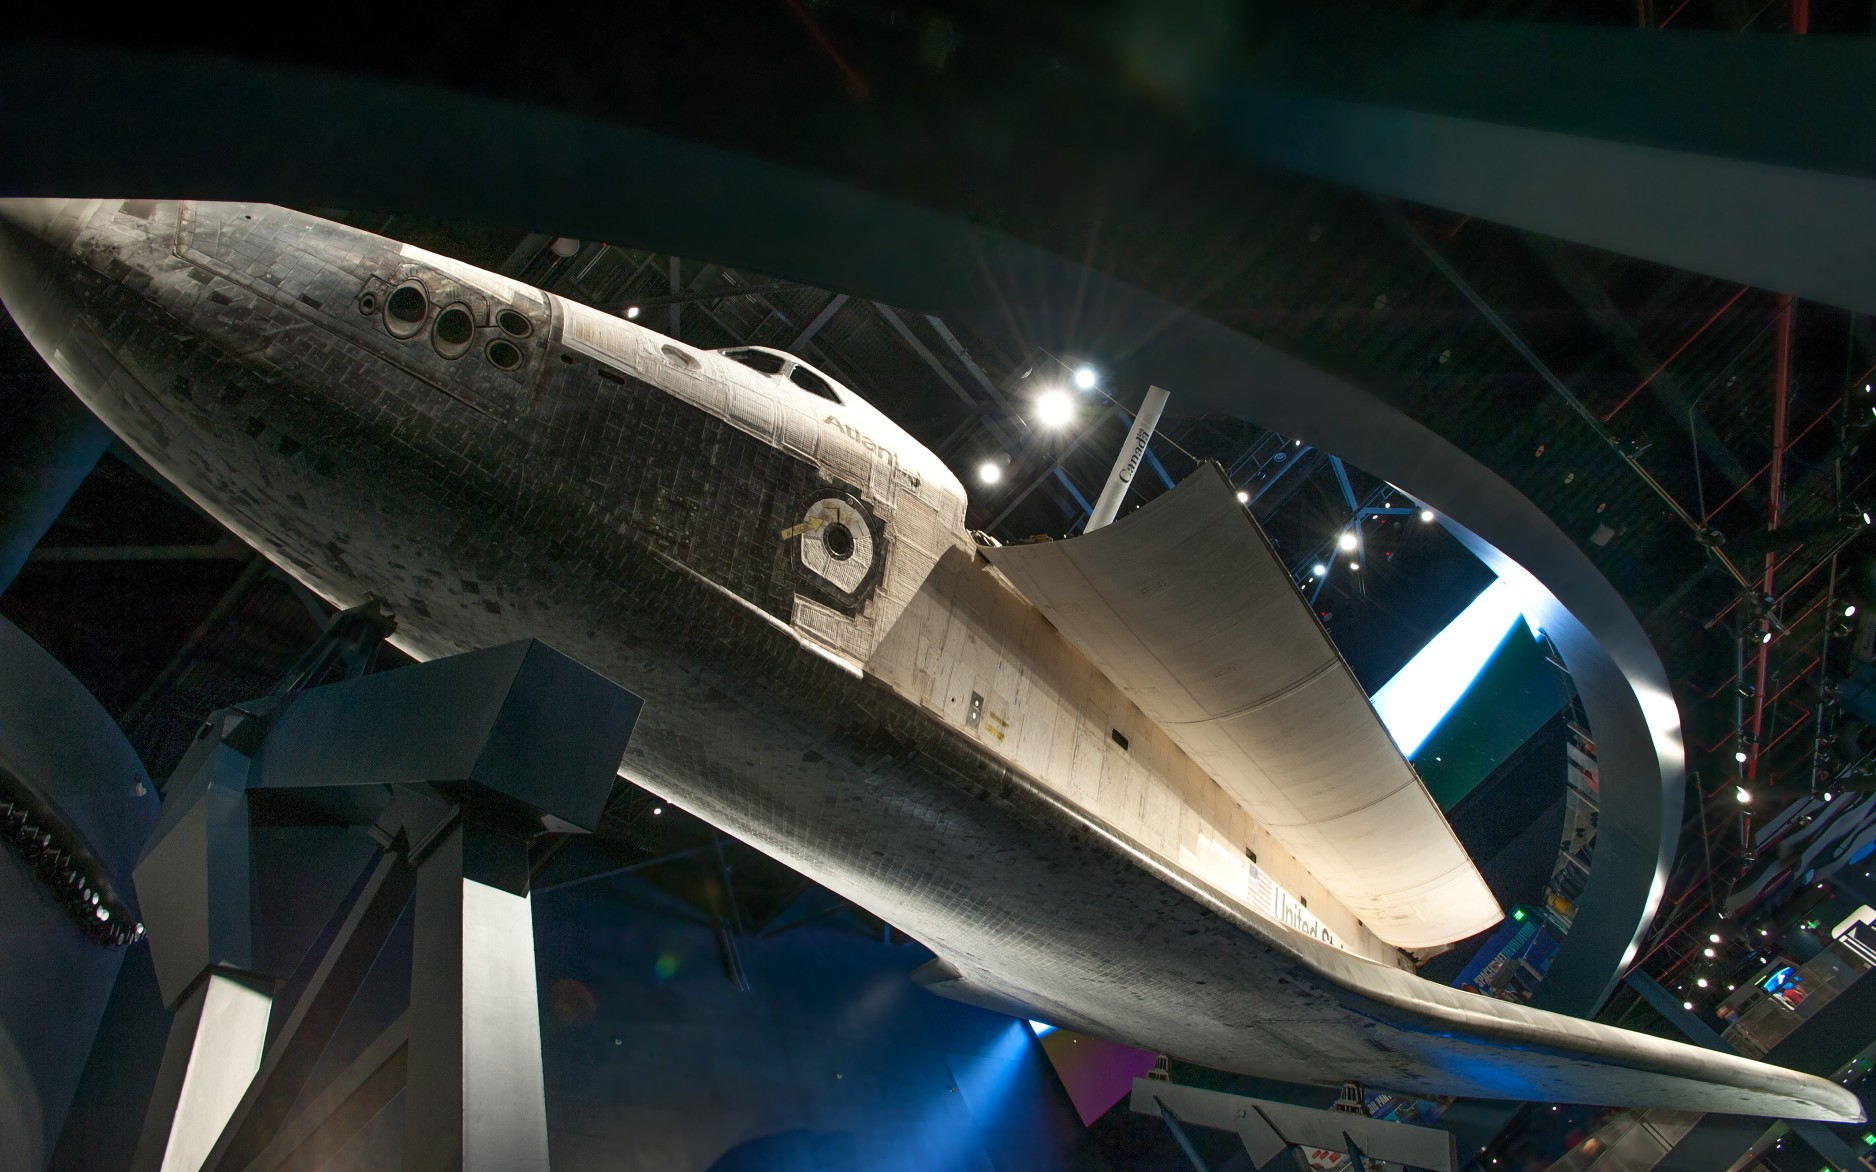 Using the museum's catwalks, Fisher Marantz Stone aimed the luminaires towards the shuttle, making the orbiter glow against the darkened backdrop.